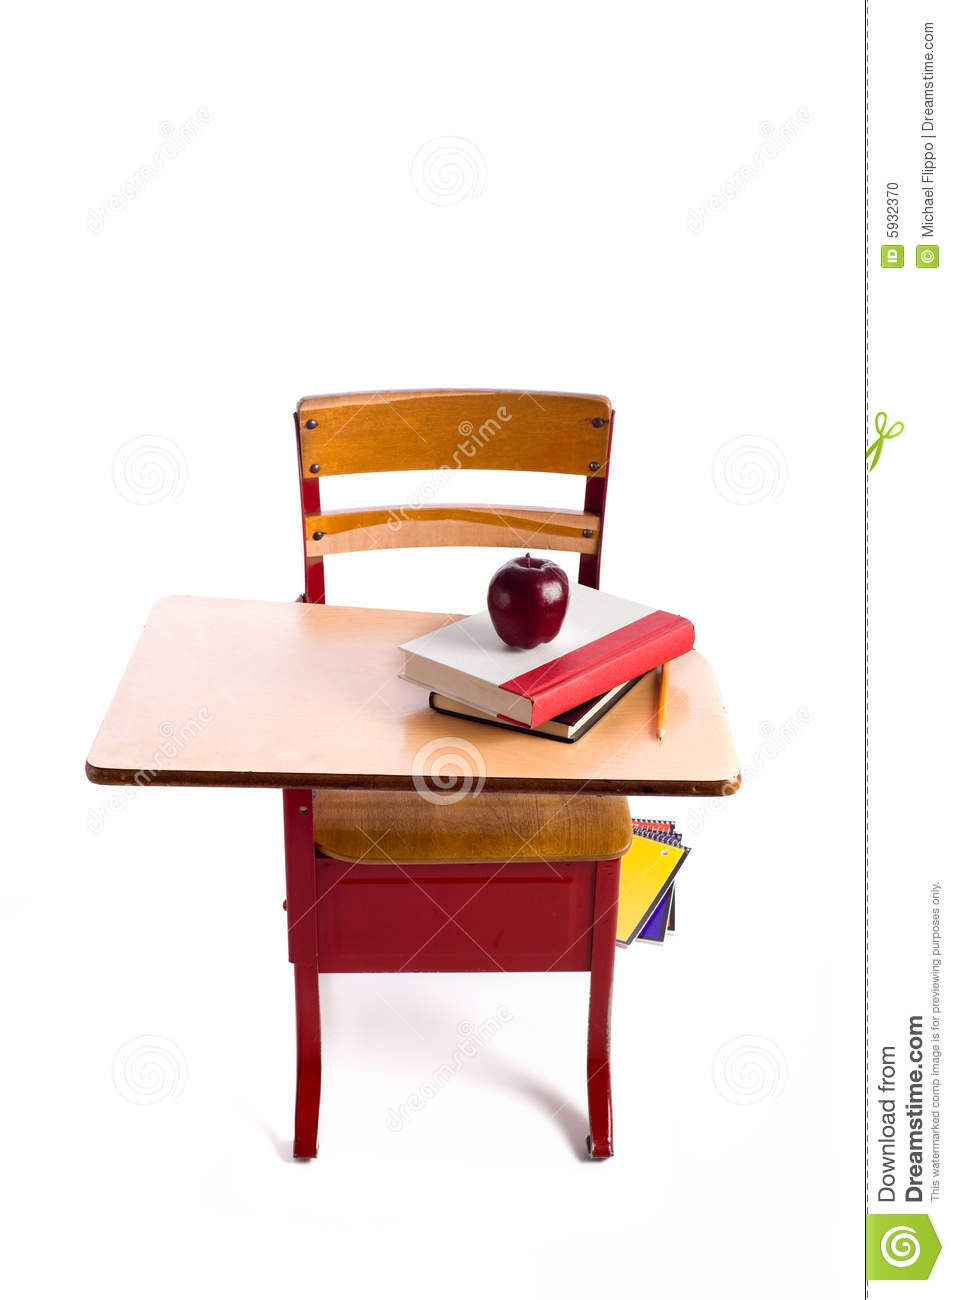 red, vintage school desk on a white background with books and an ... School Desk Background